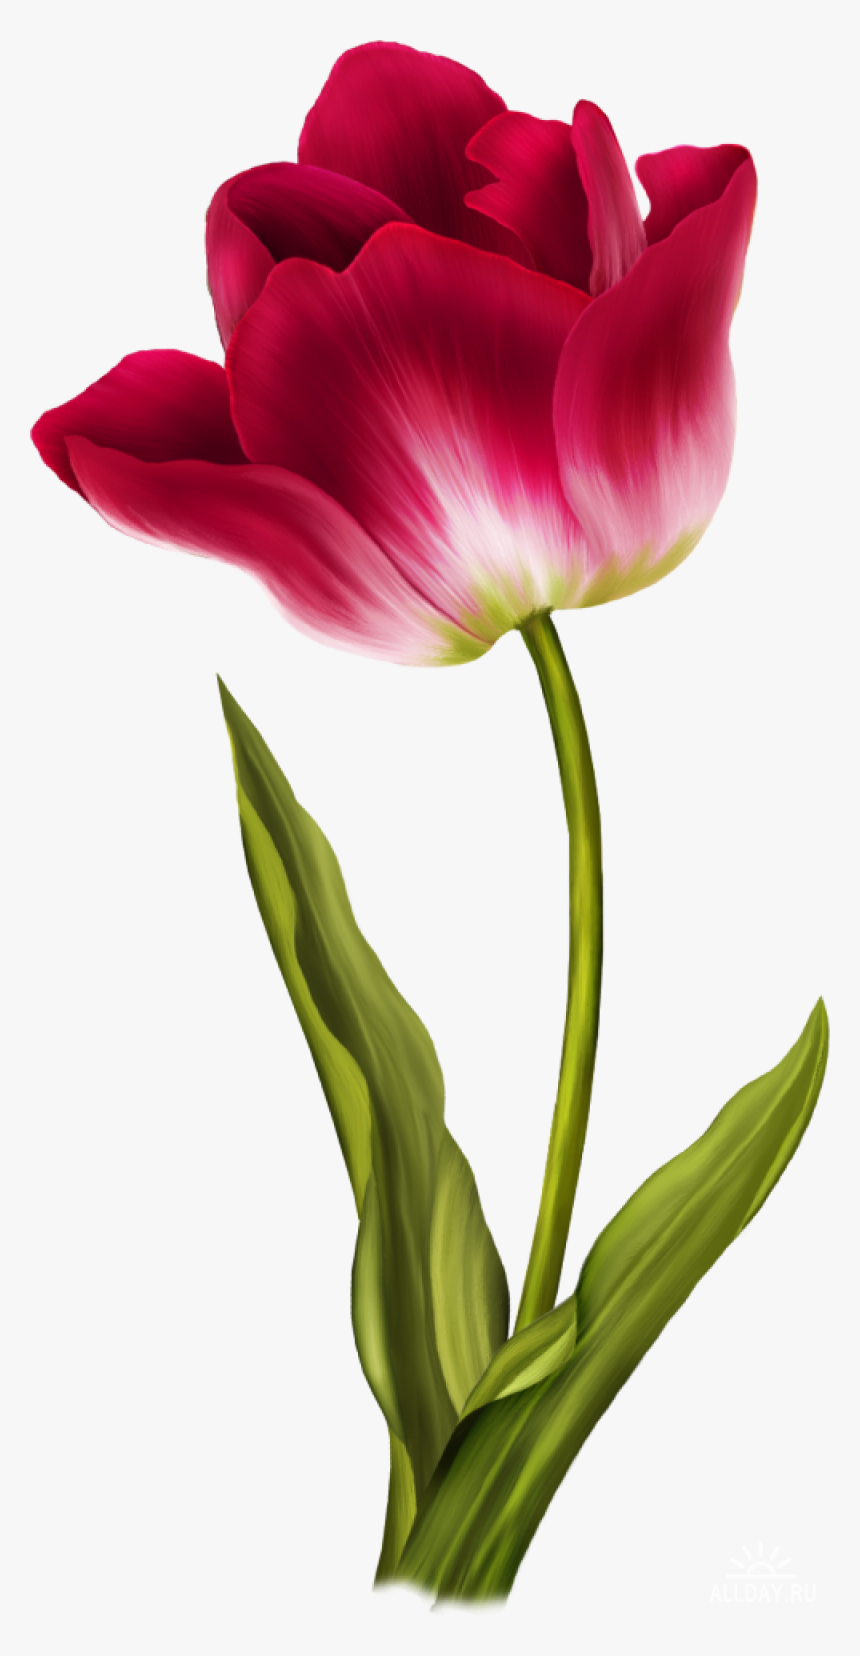 Tulip Png Image Flower Color Pencil Drawing Transparent Png Transparent Png Image Pngitem